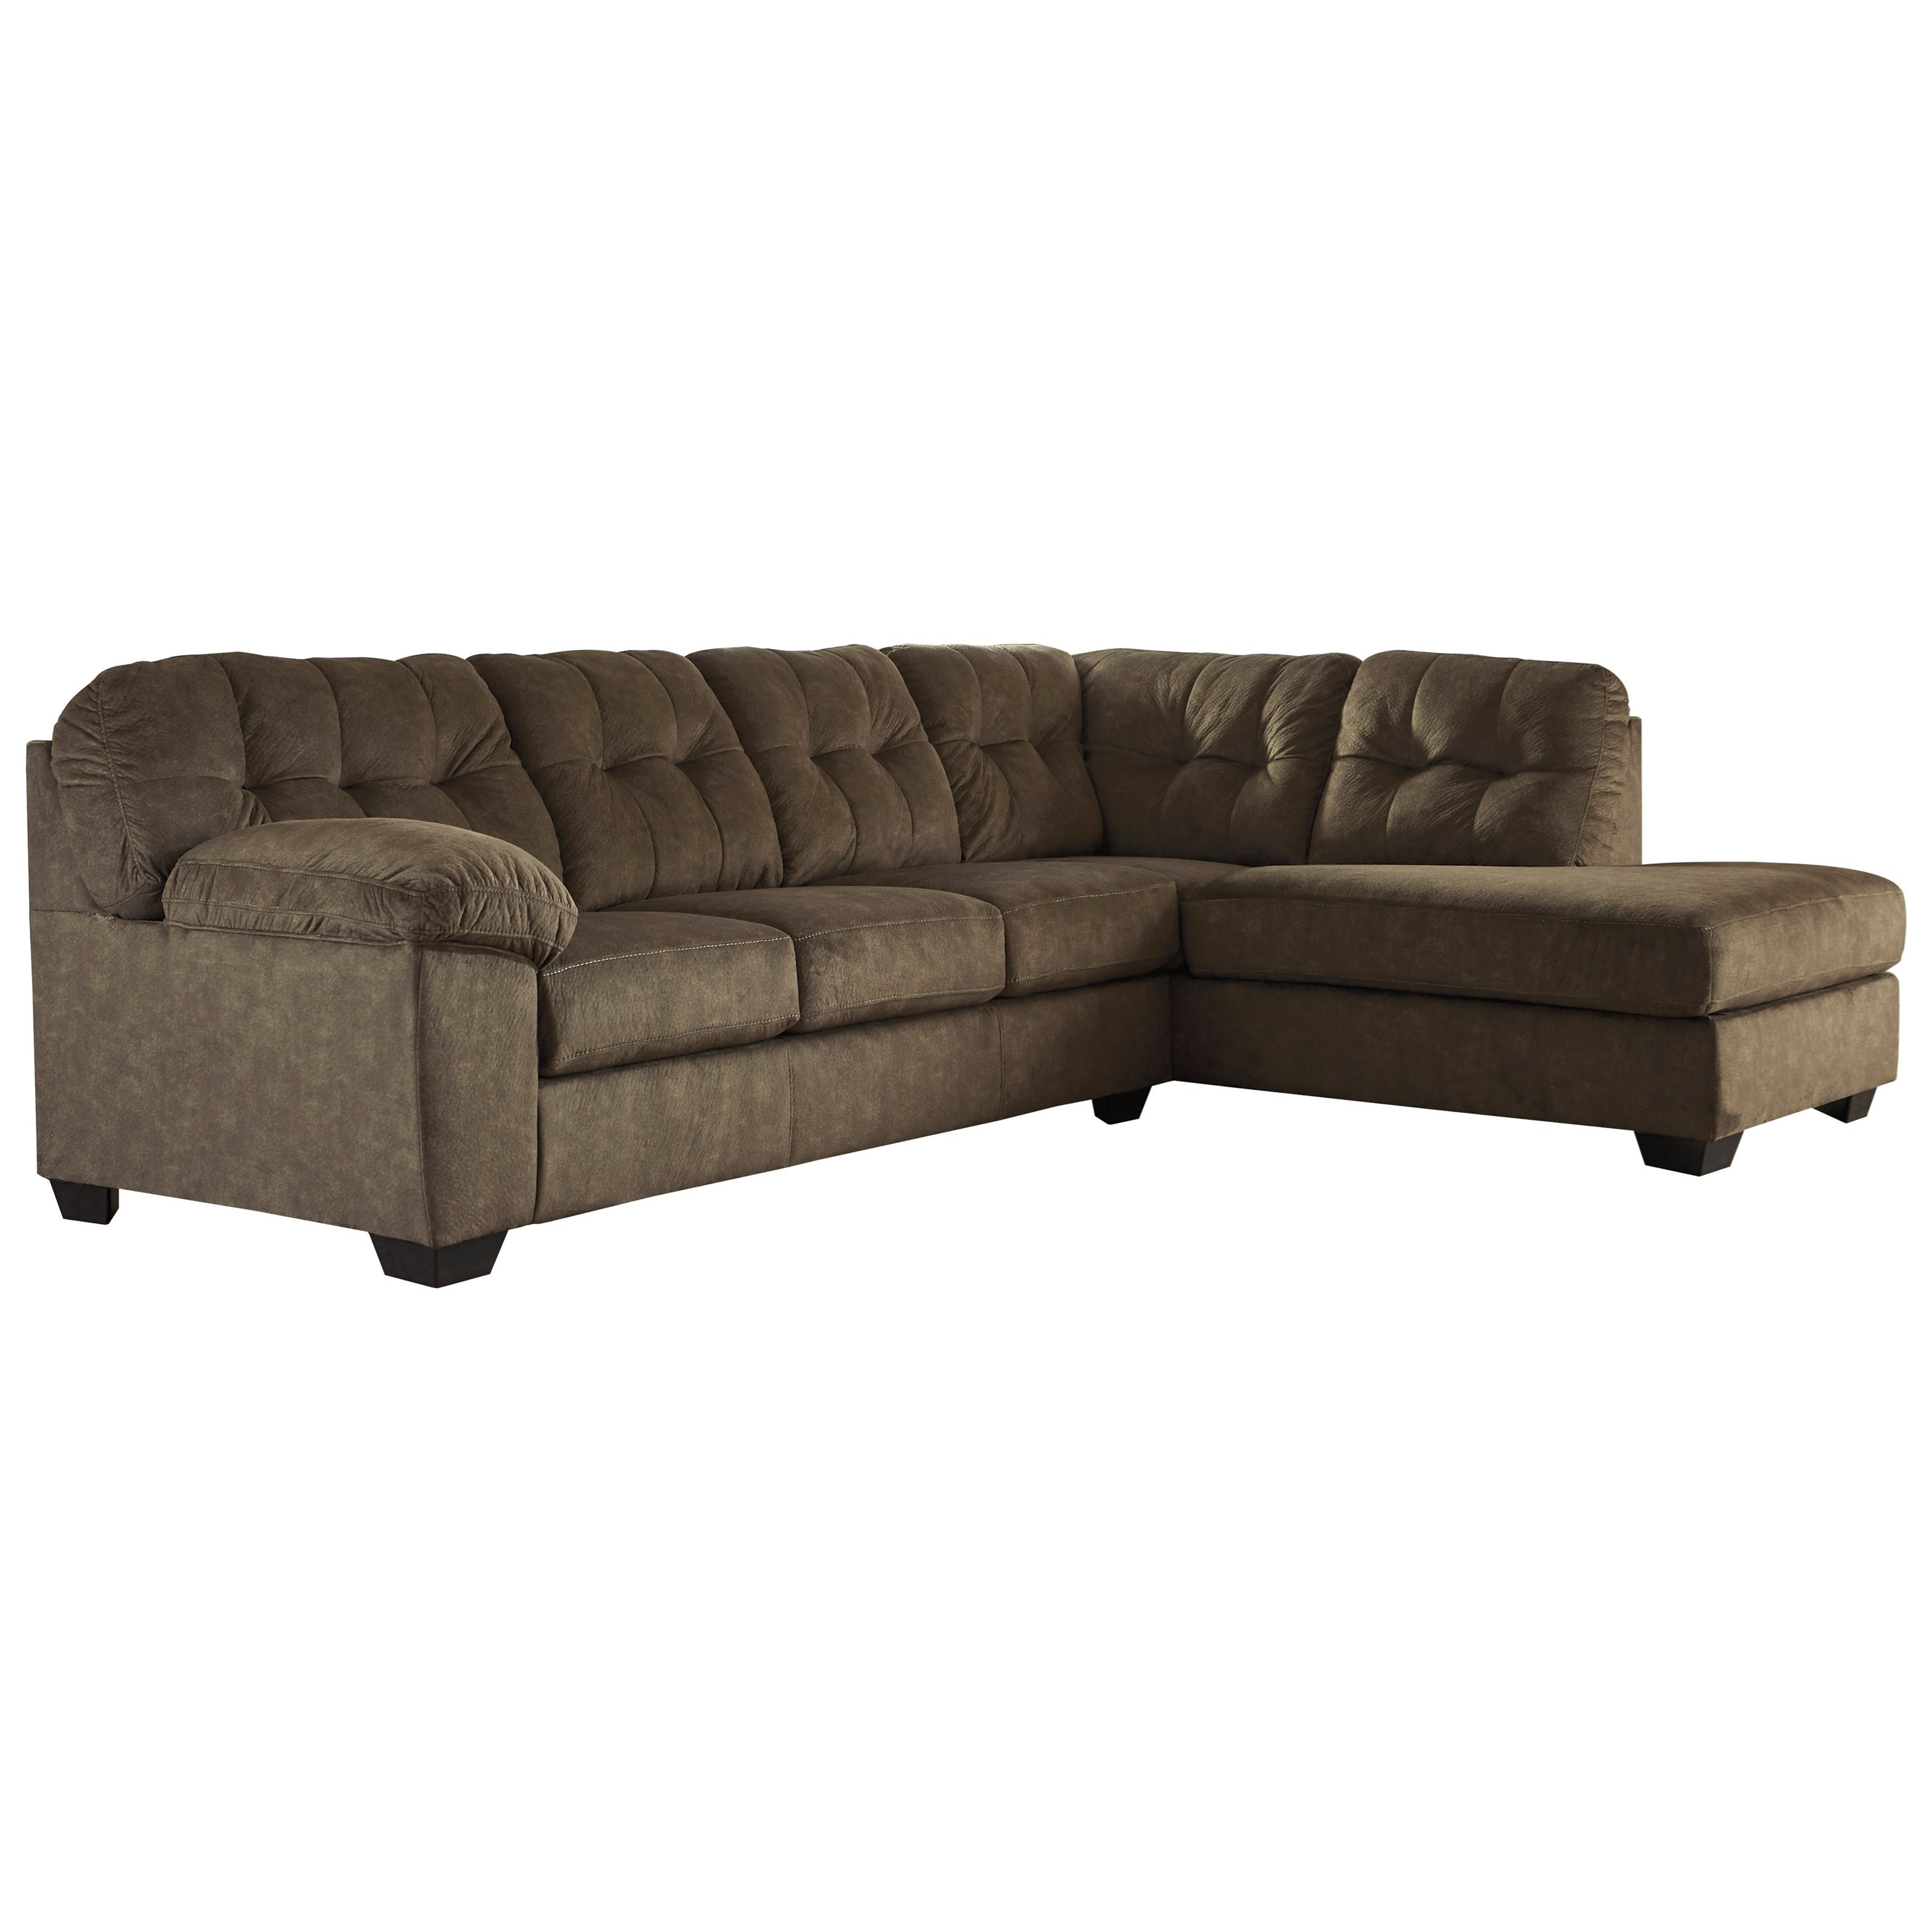 Accrington Sectional with Right Chaise & Queen Sleeper by Signature Design by Ashley at Value City Furniture